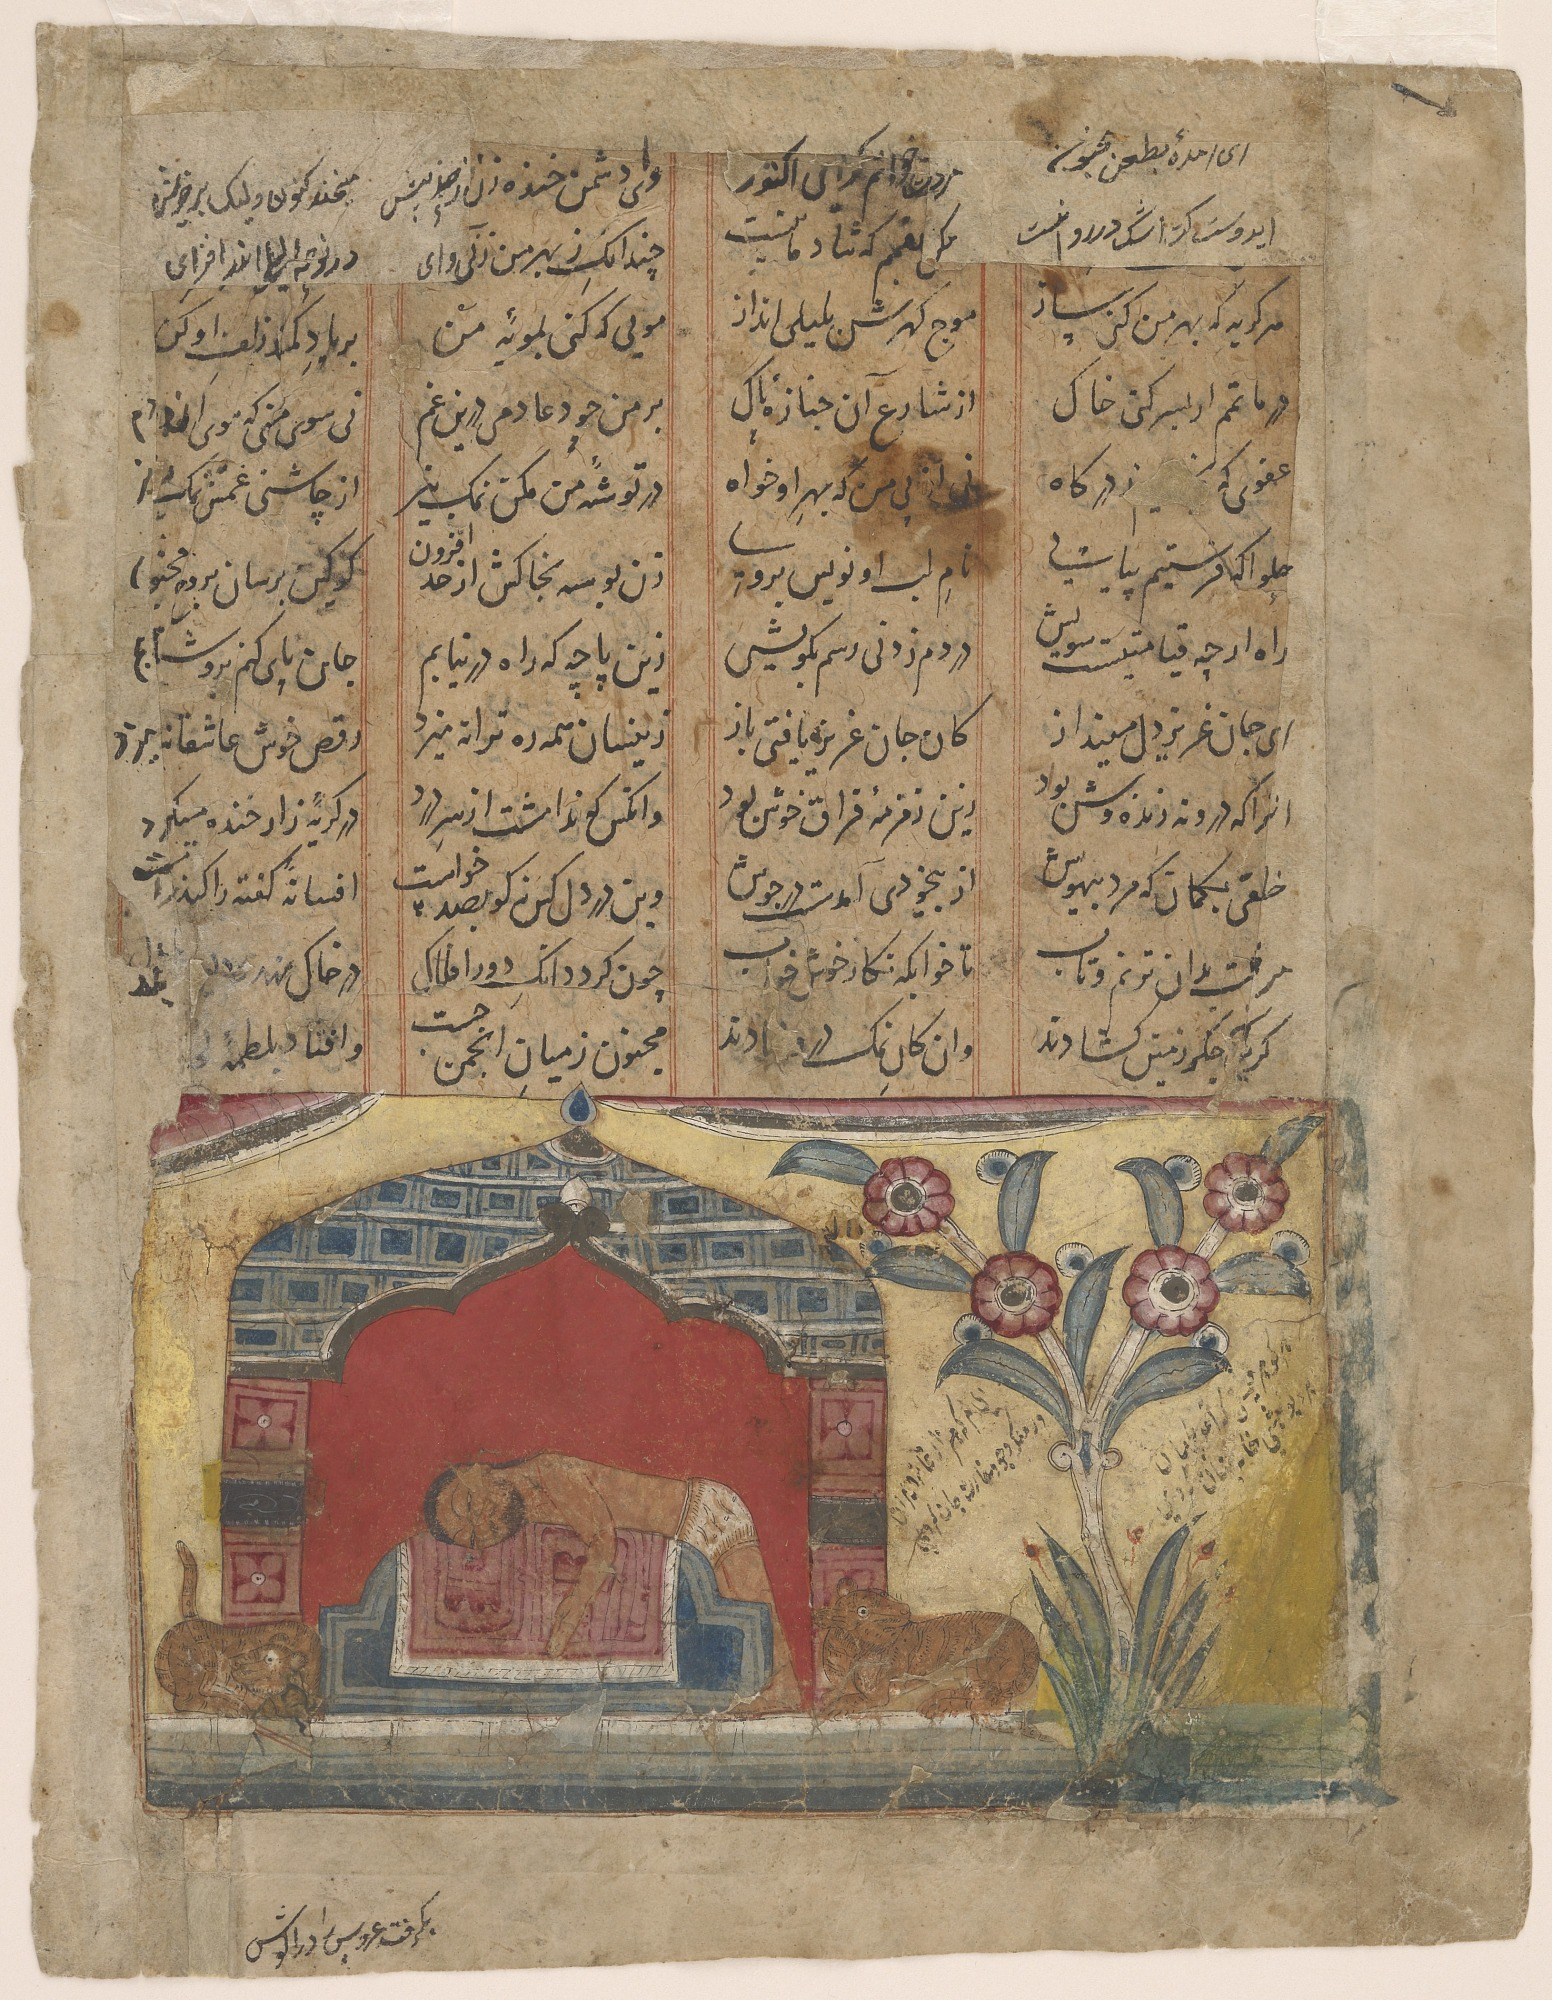 Majnun throwing himself onto Layla